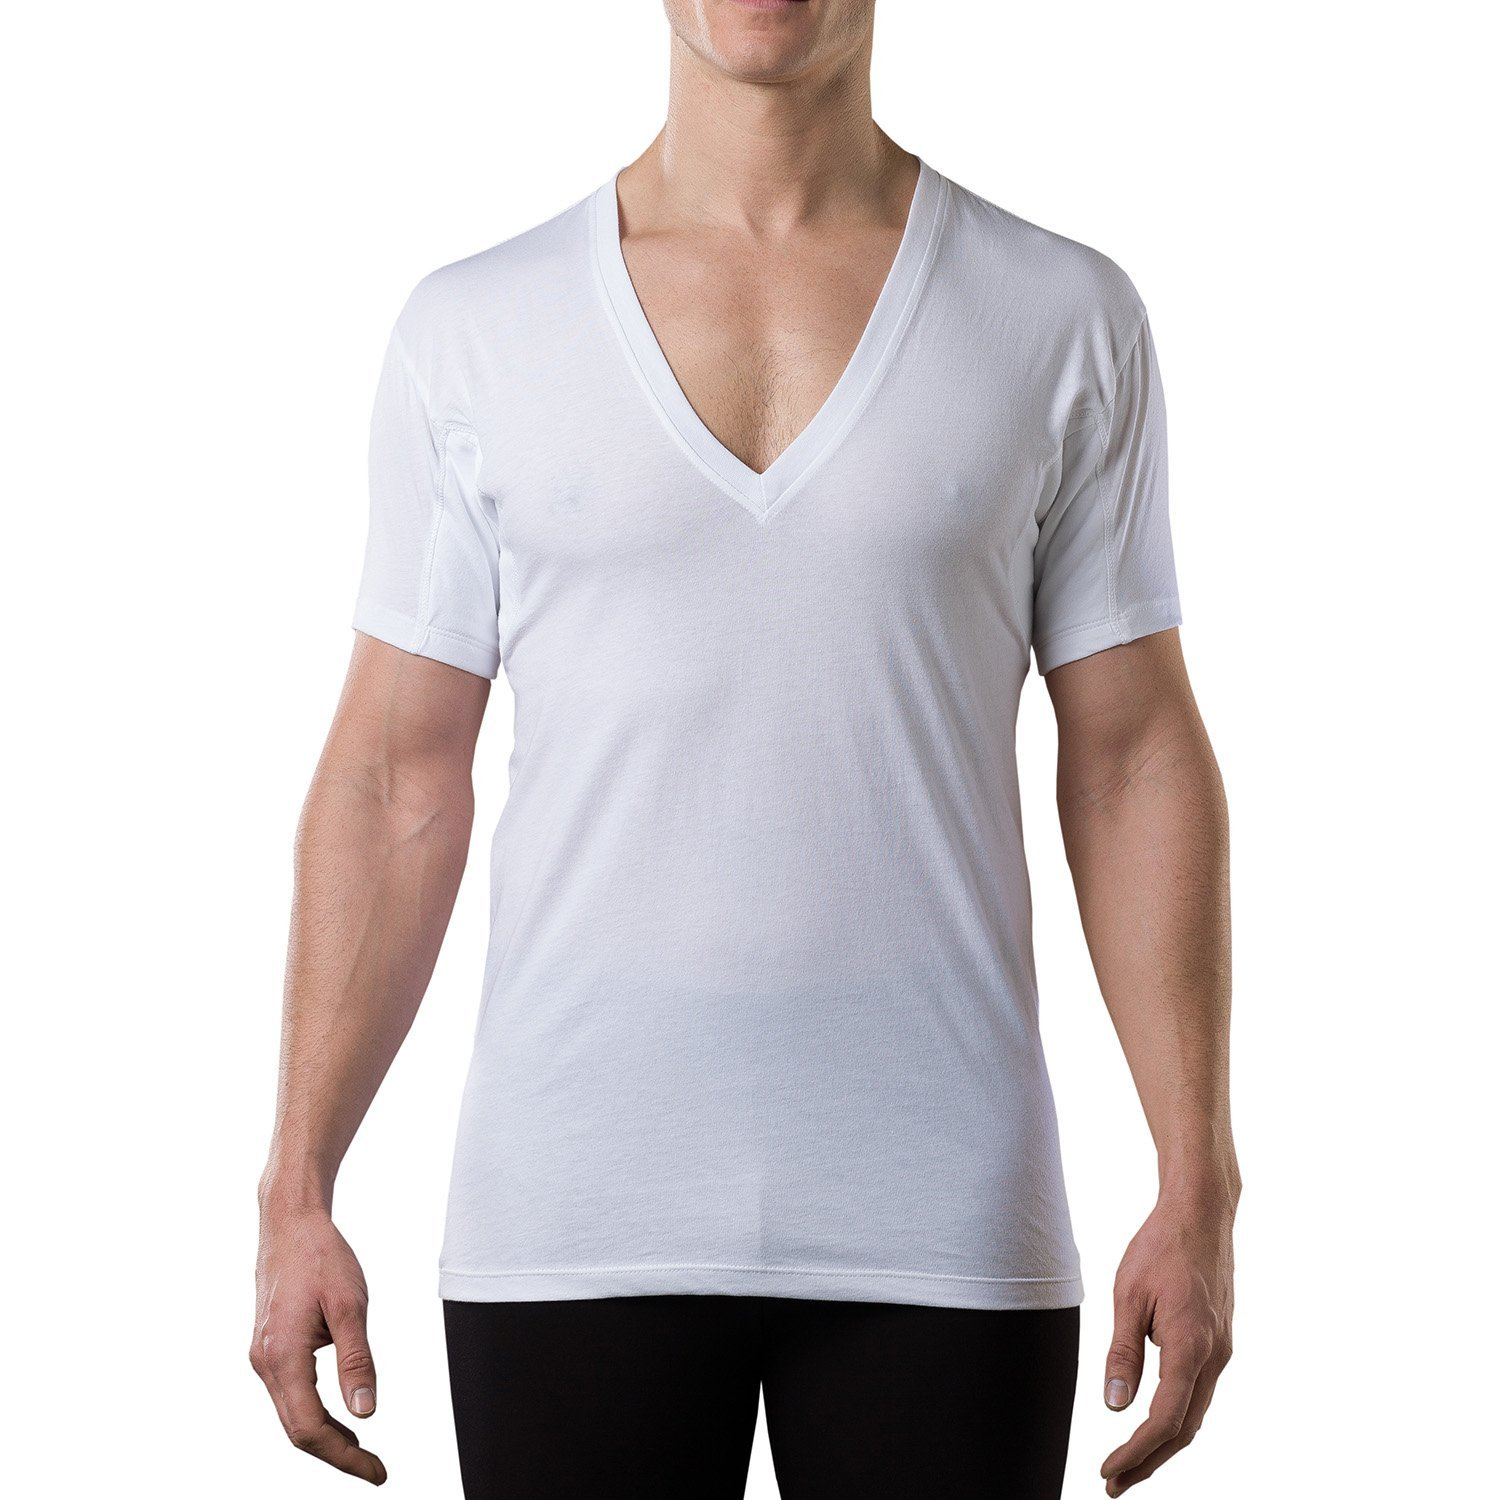 Sweatproof Undershirt for Men w/ Underarm Sweat Pads (Original Fit, Deep V-Neck) by T THOMPSON TEE